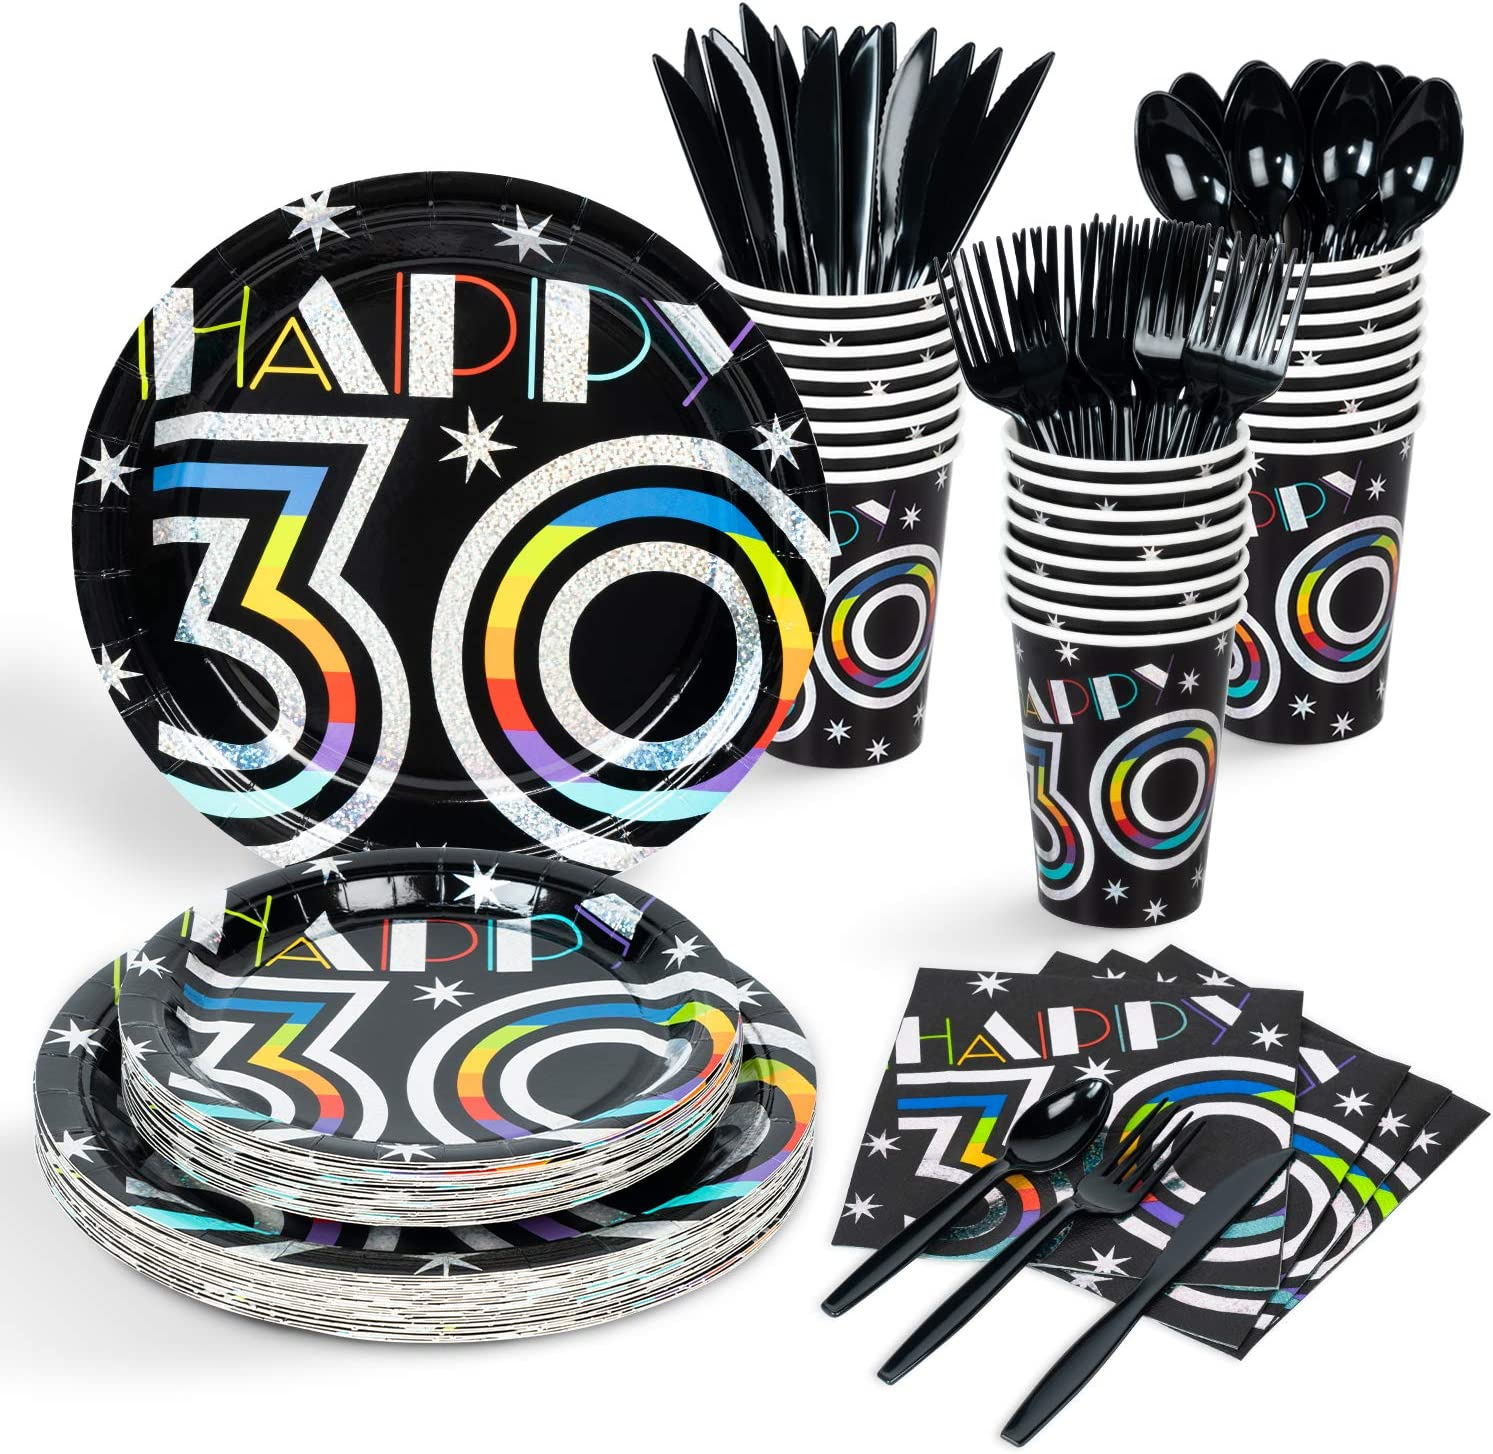 Decorlife 30th Birthday Party Supplies Serves 24, Party Plates a